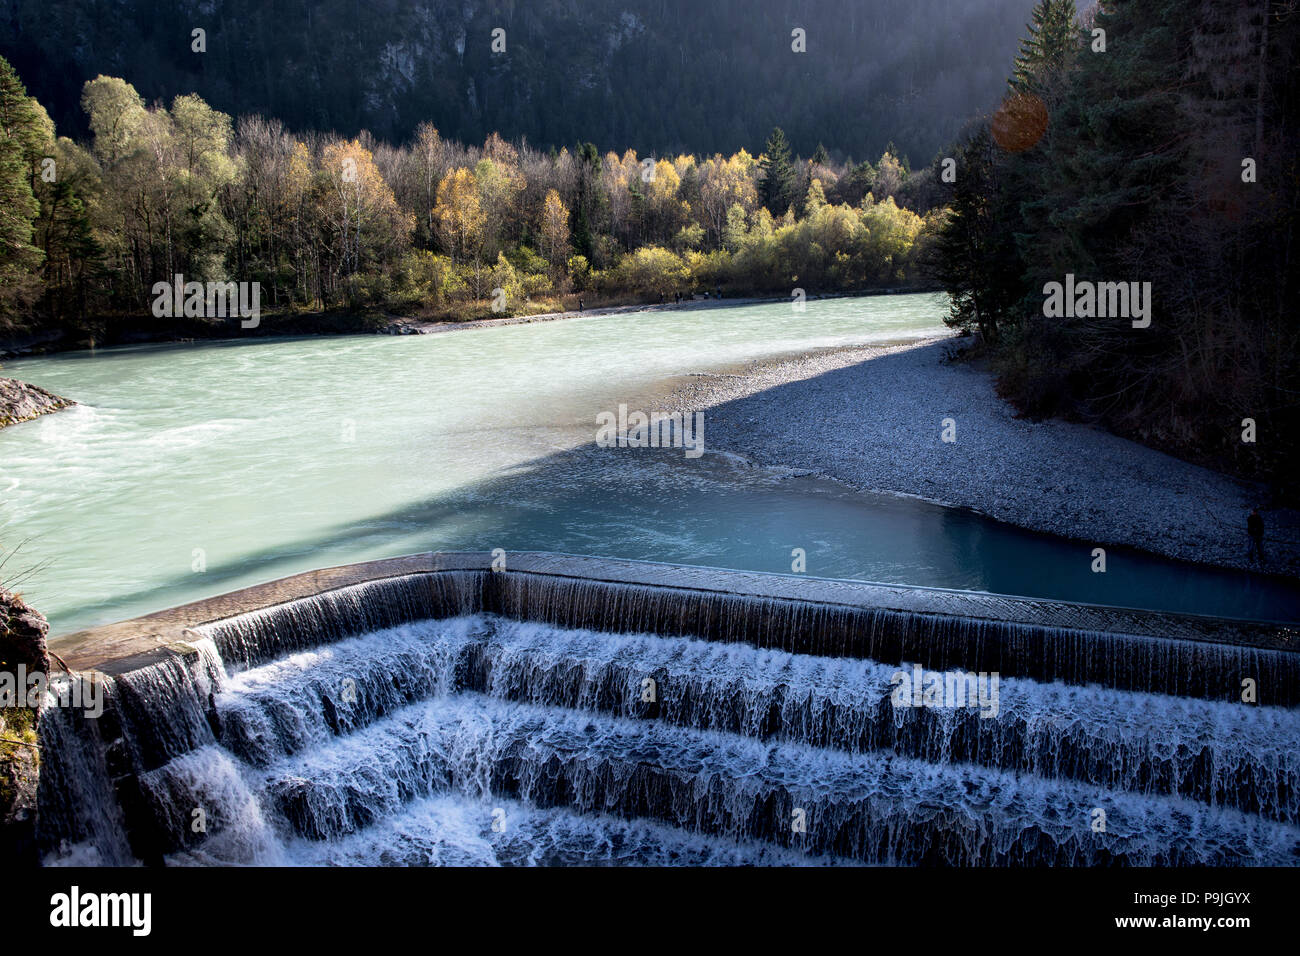 Lechfall near Fussen Stock Photo